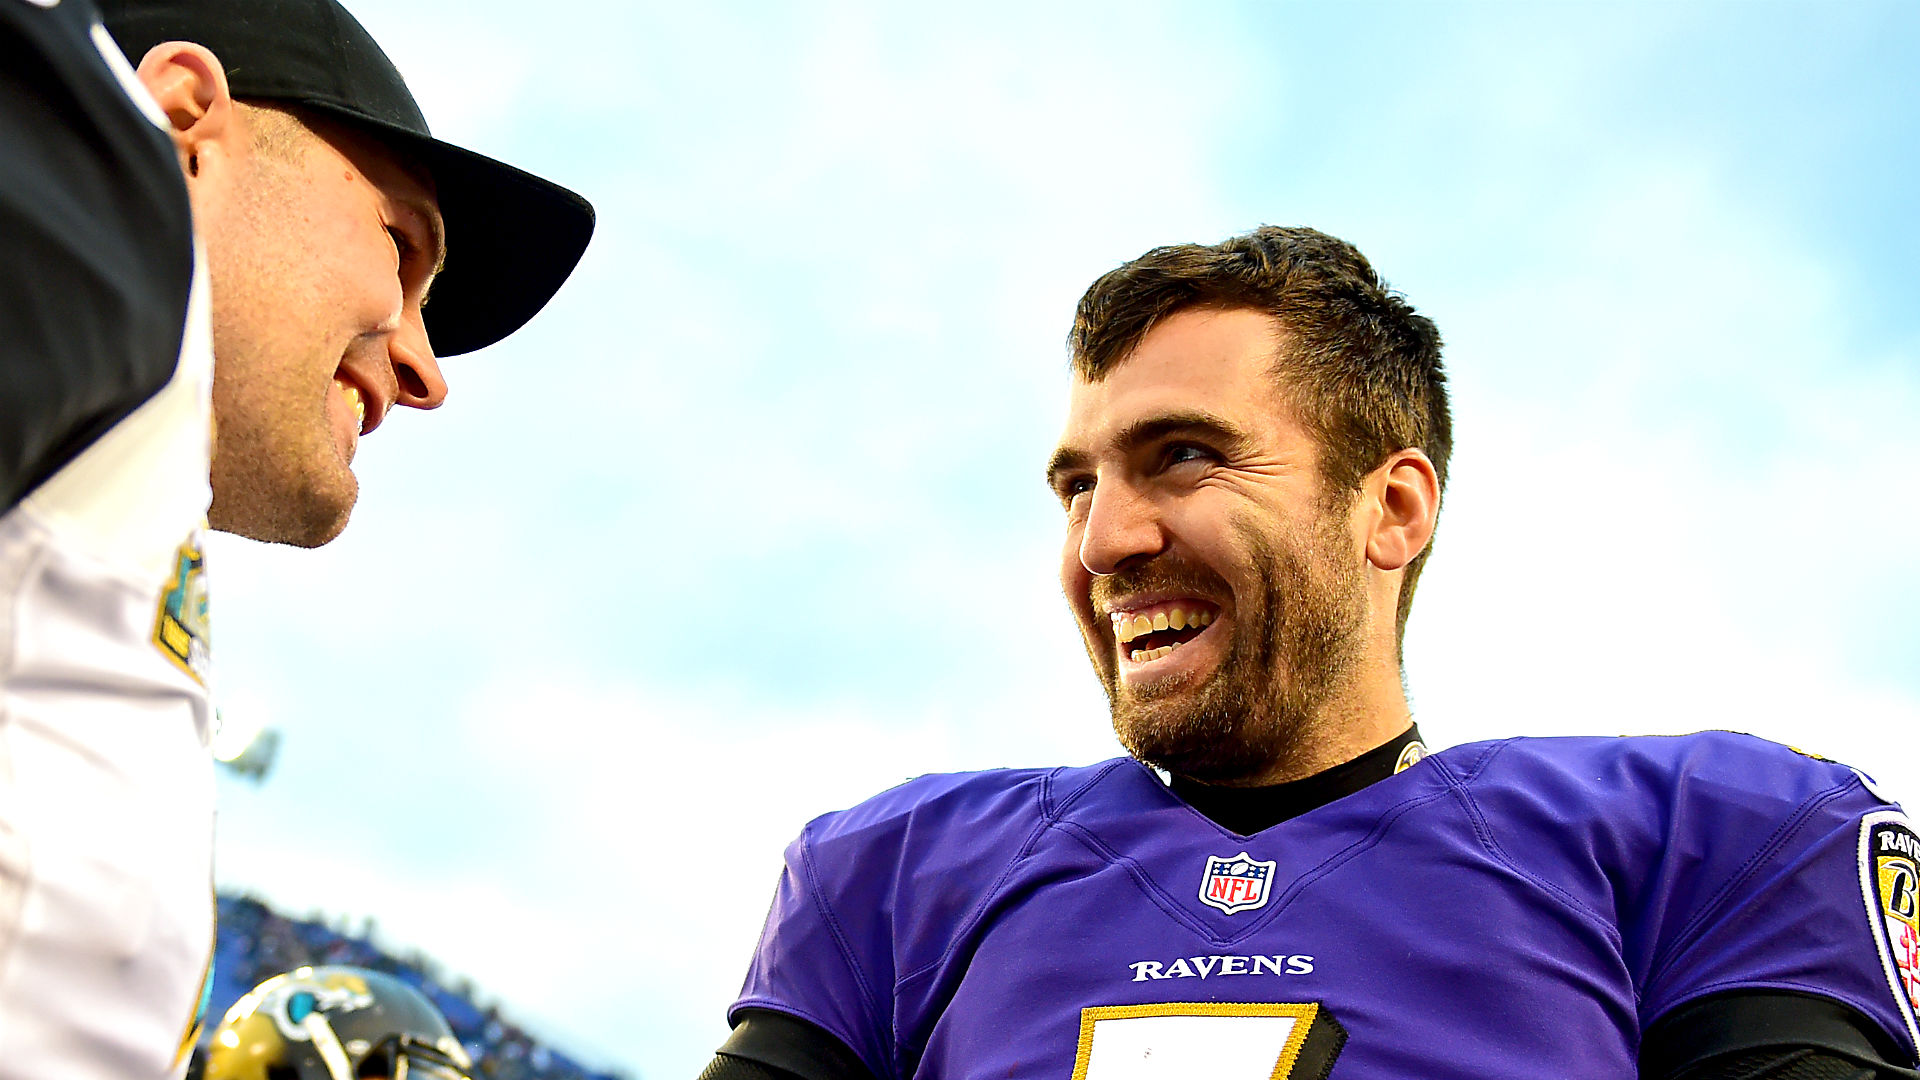 flacco-joe010315-getty-ftr.jpg